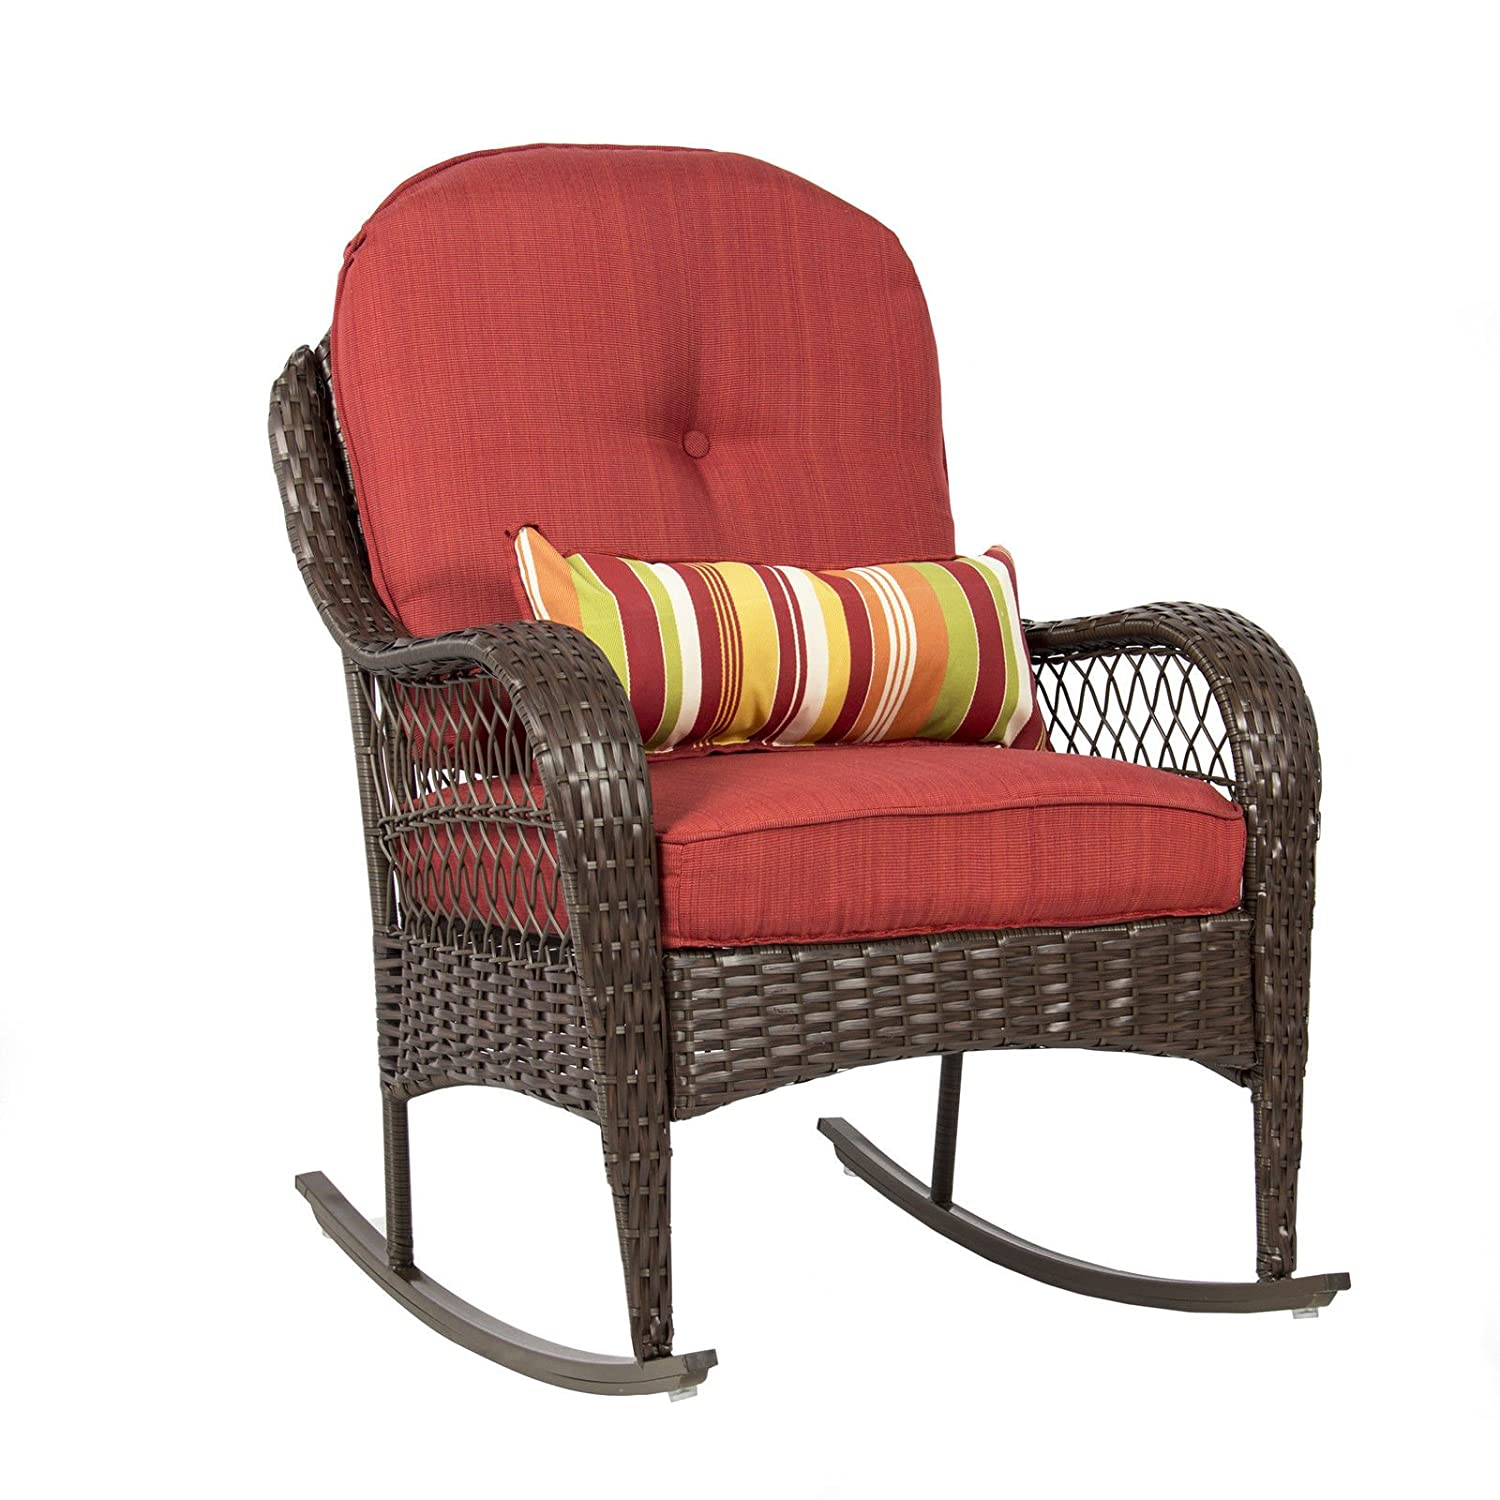 Amazon Best ChoiceProducts Wicker Rocking Chair Patio Porch